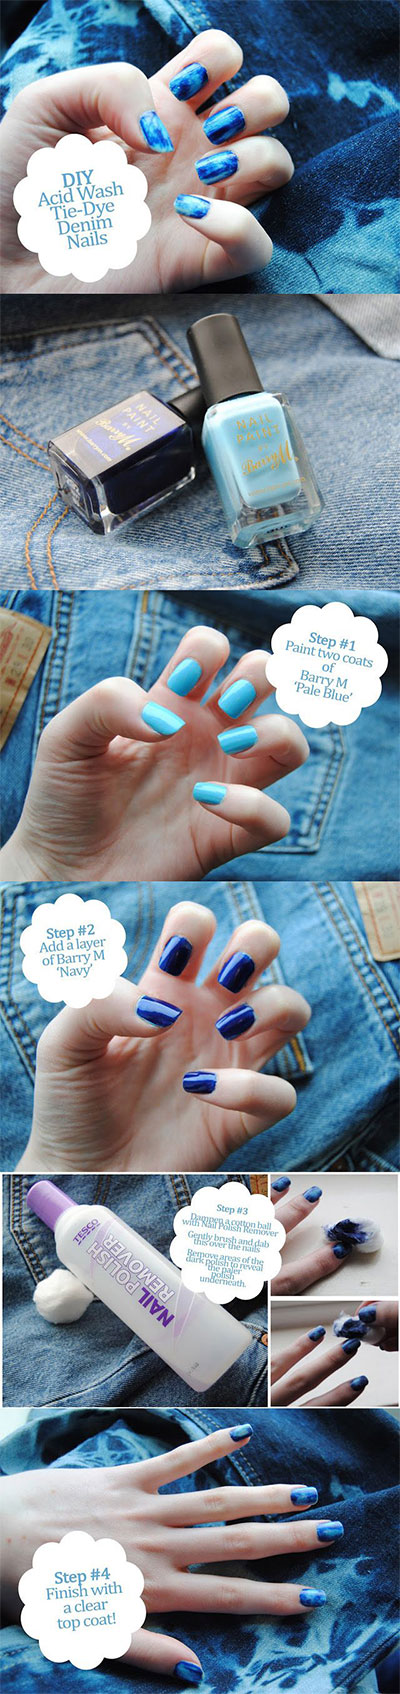 25-Very-Easy-Simple-Step-By-Step-Nail-Art-Tutorials-For-Beginners-Learners-2014-25